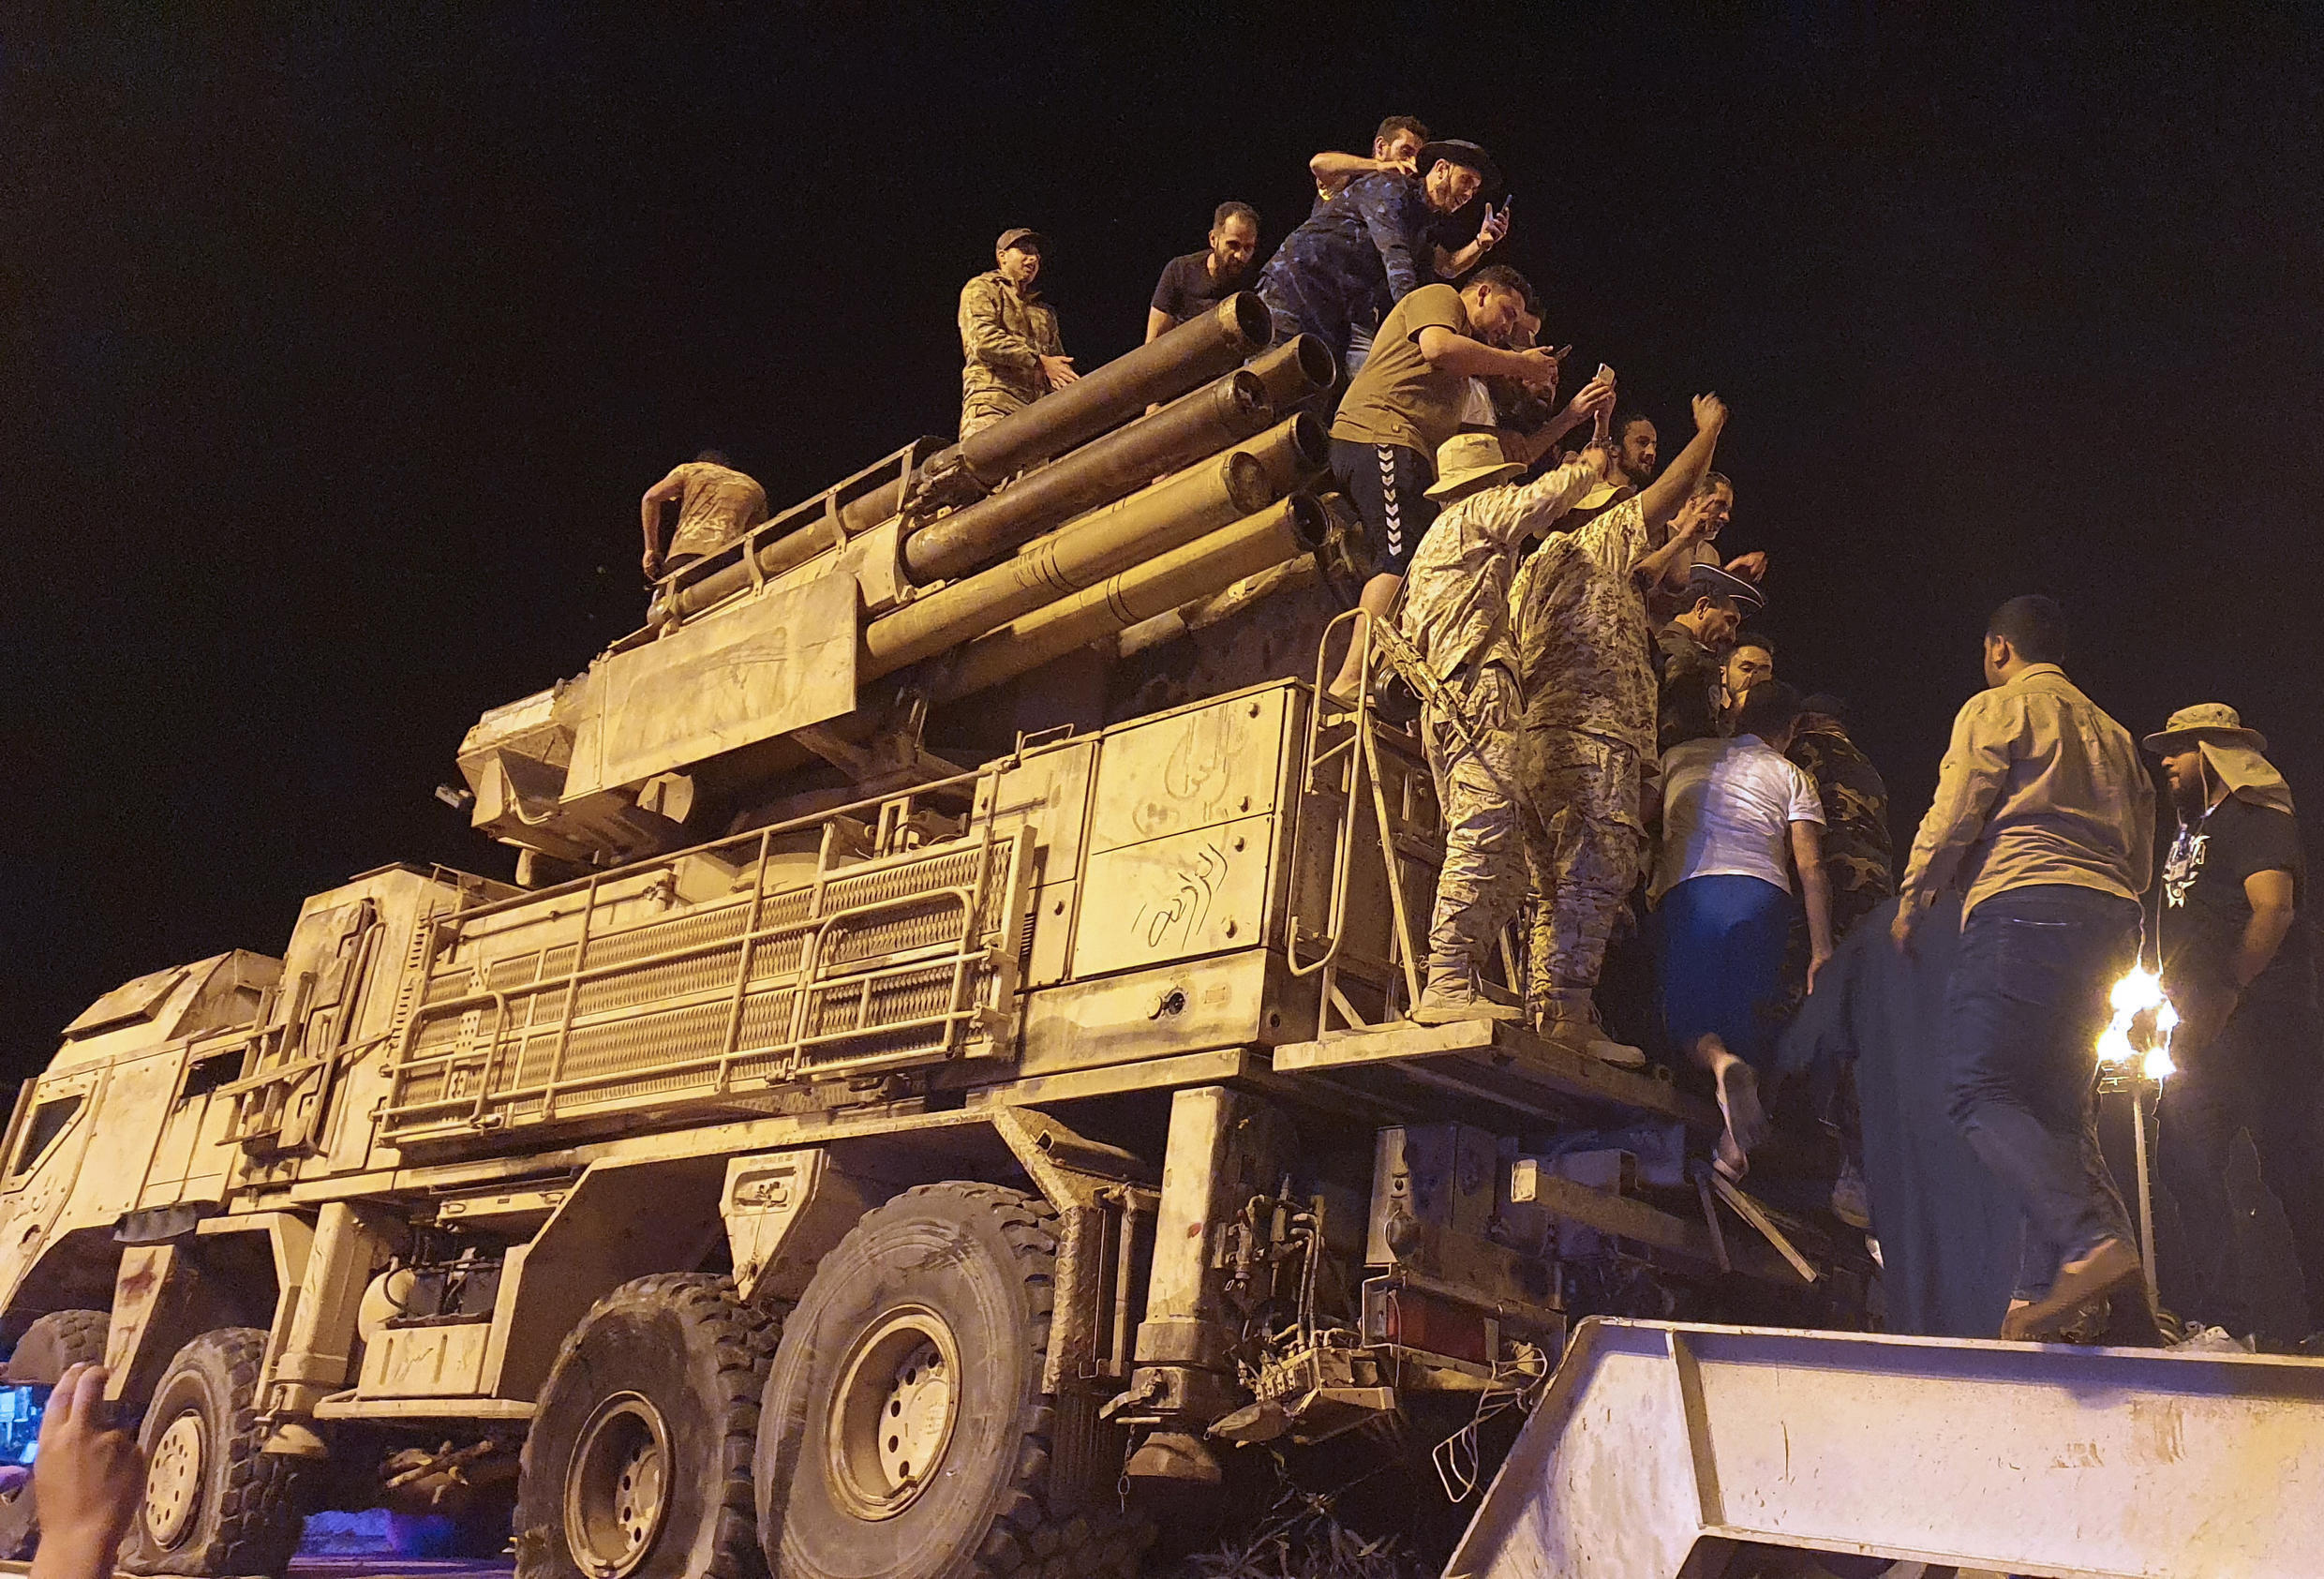 Forces loyal to Libya's UN-recognized Government of National Accord parade a Pantsir air defense system truck in the capital Tripoli on May 20, 2020 after its capture at a nearby airbase from strongman Khalifa Haftar